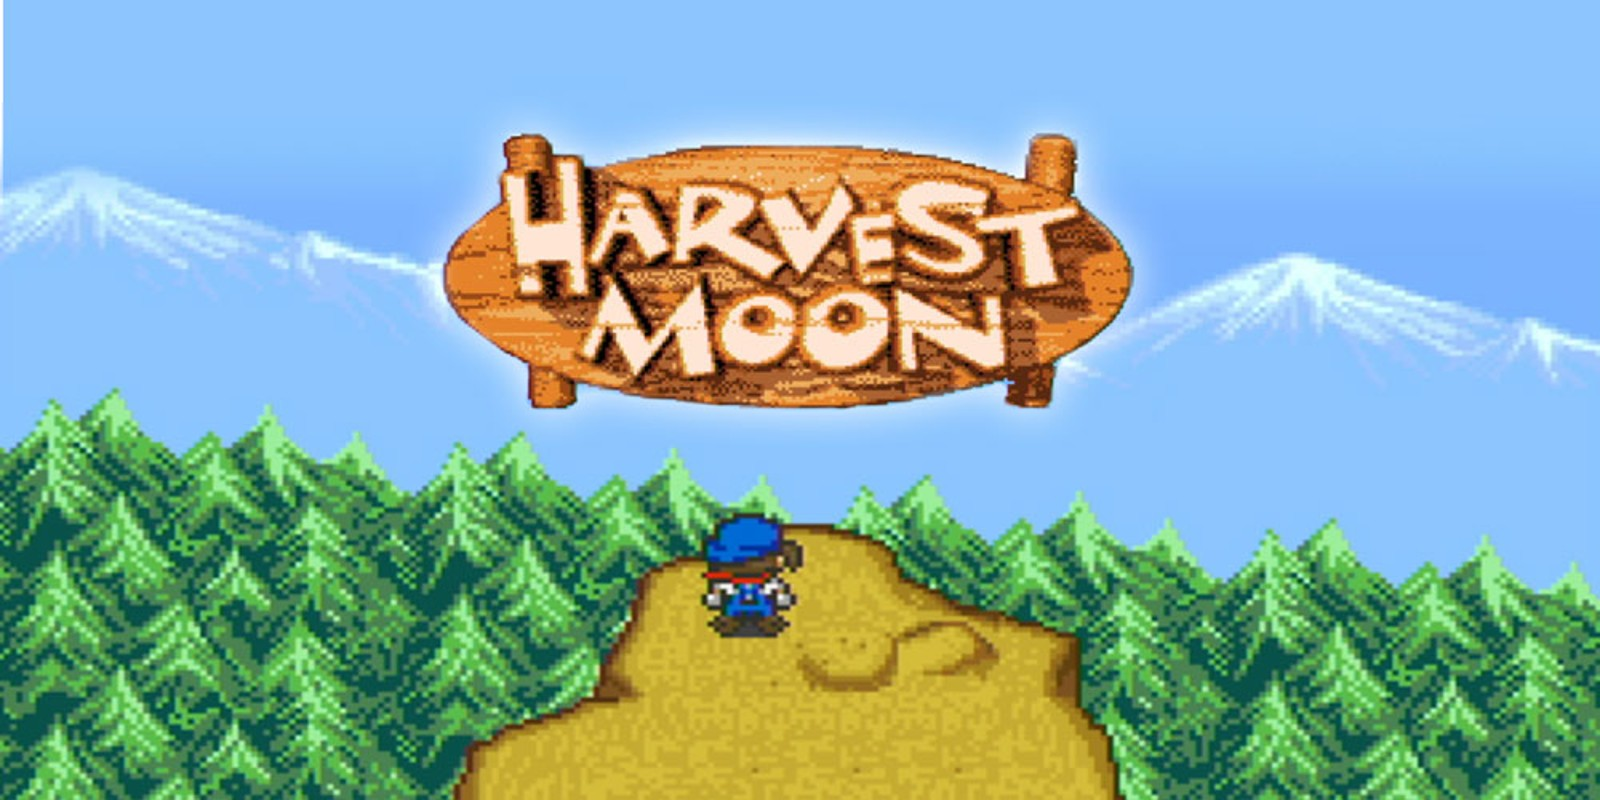 Harvest moon (snes) buy or download rom and cheats.